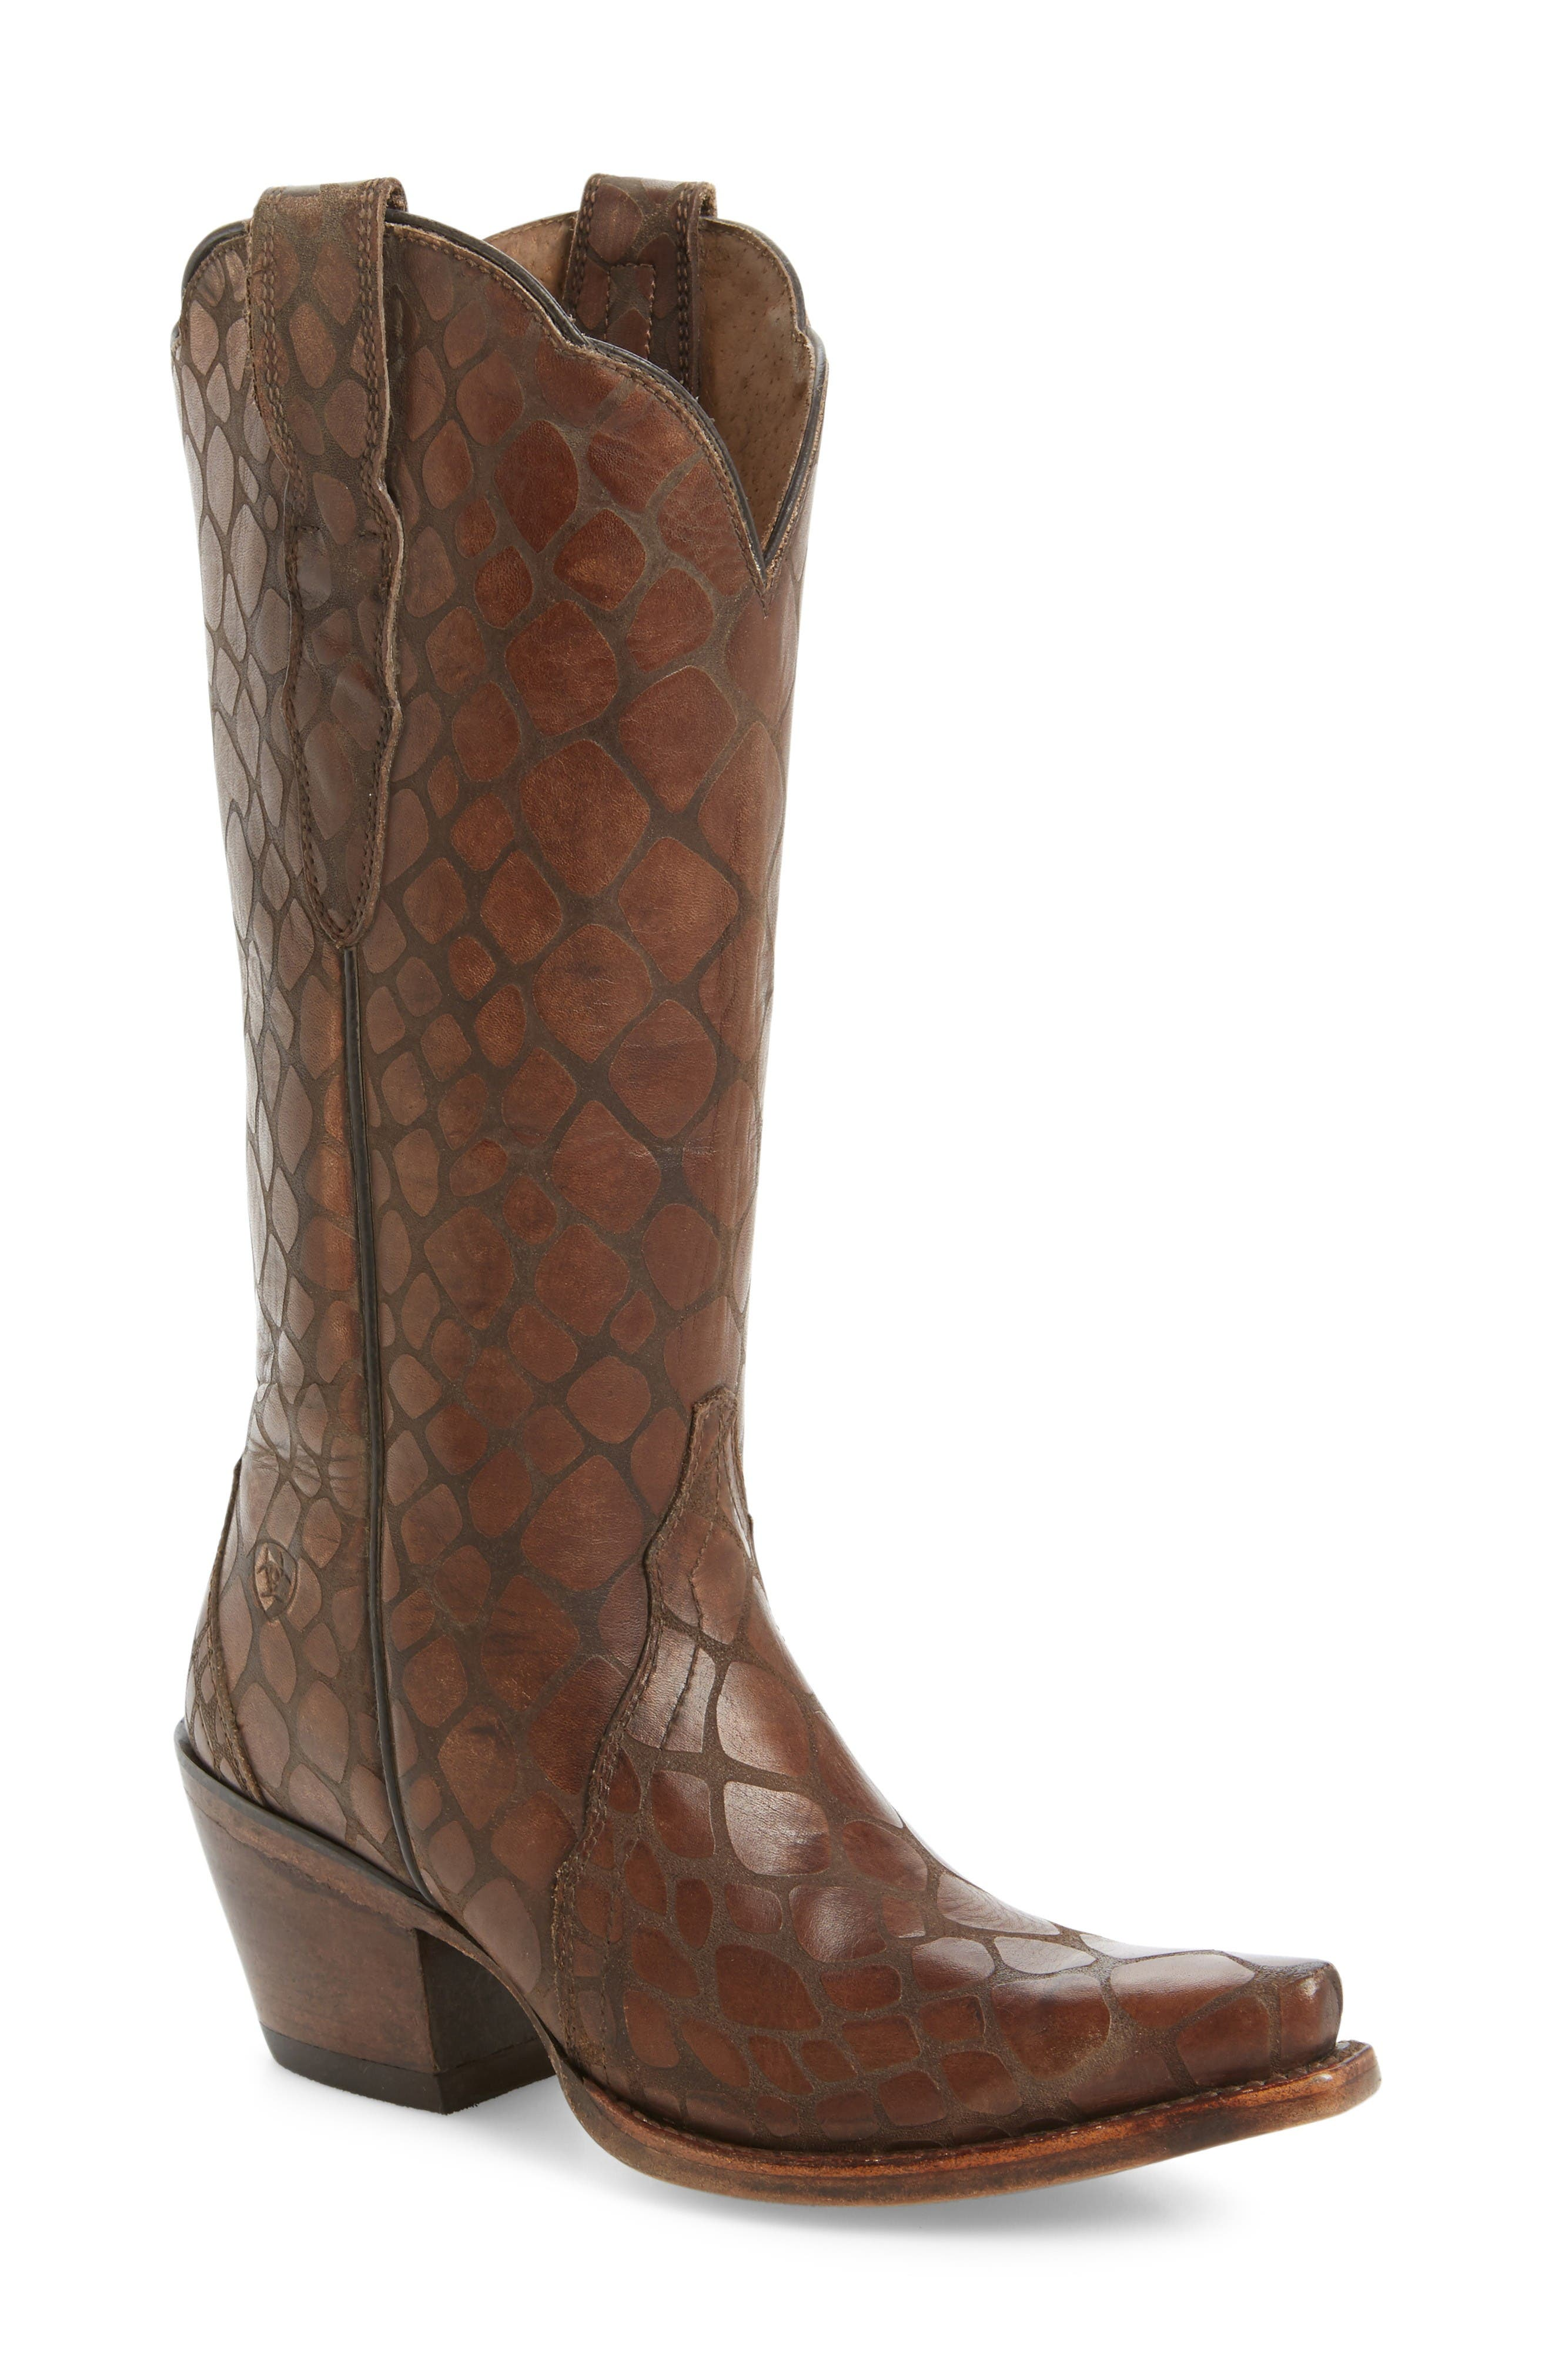 Antebellum Croc Embossed Western Boot,                             Main thumbnail 1, color,                             Brown Leather